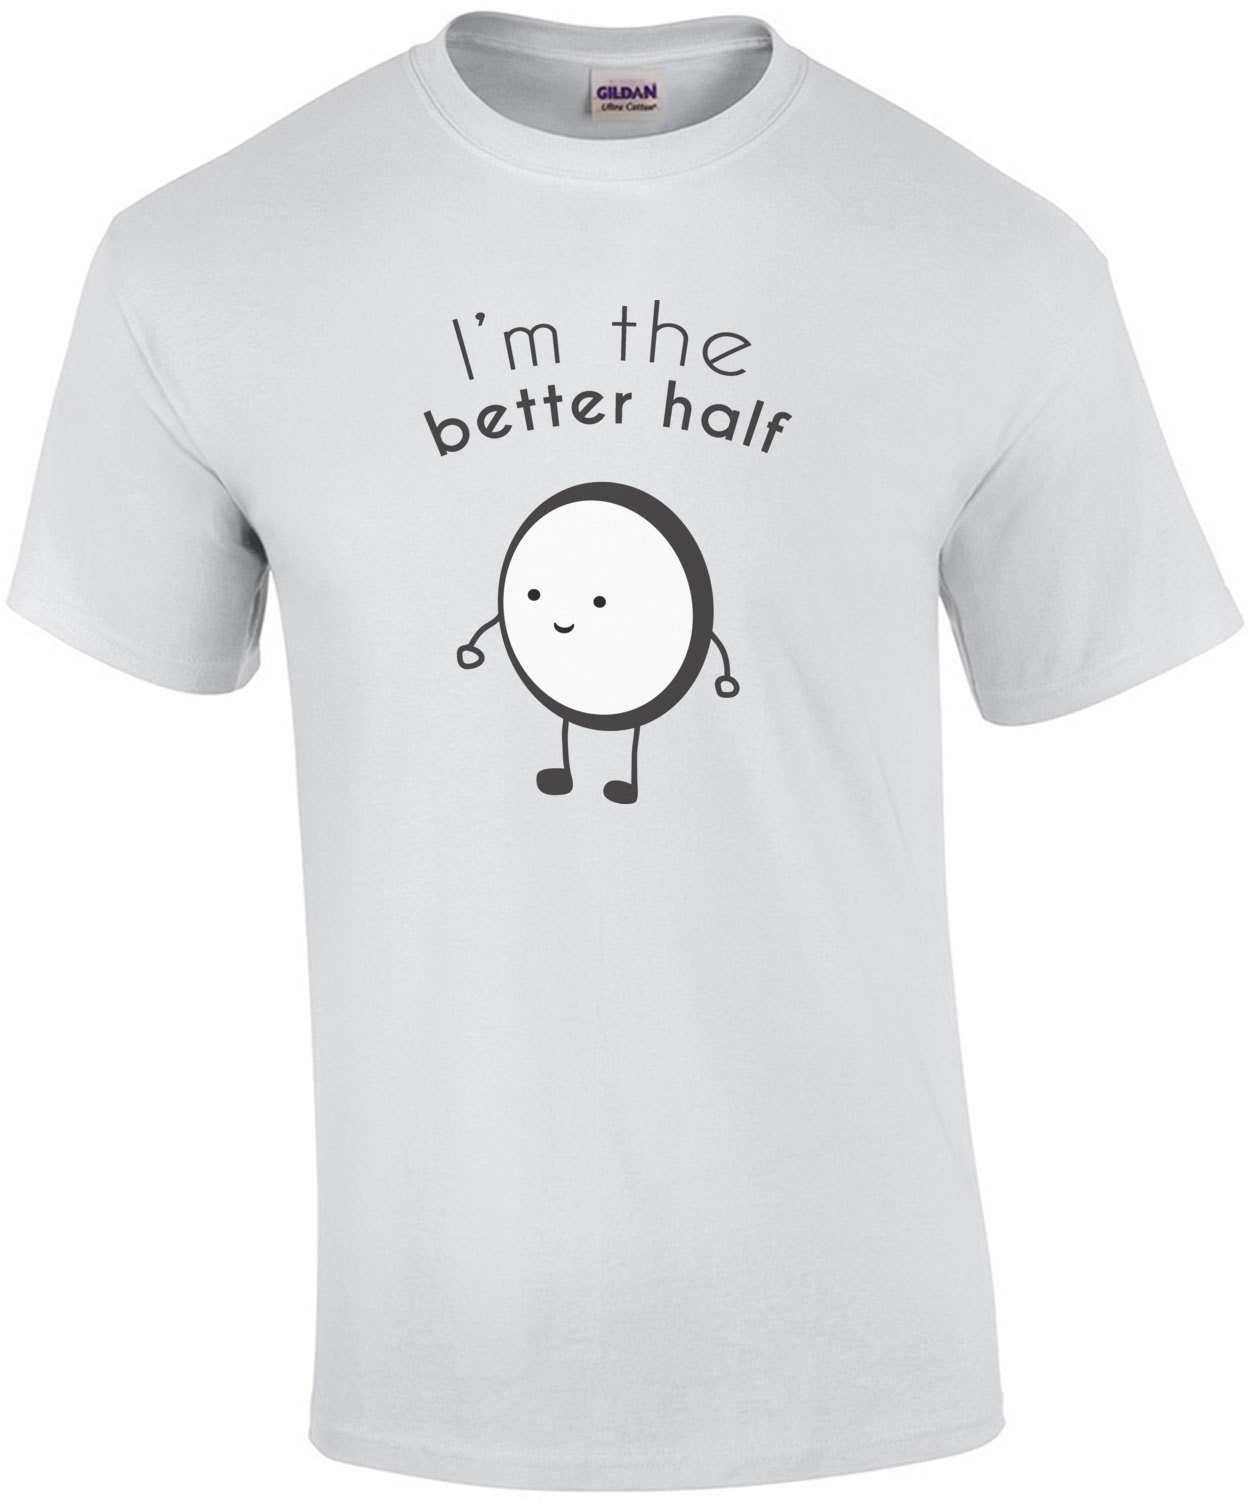 I'm the better half - oreo cookie t-shirt - couple's t-shirt